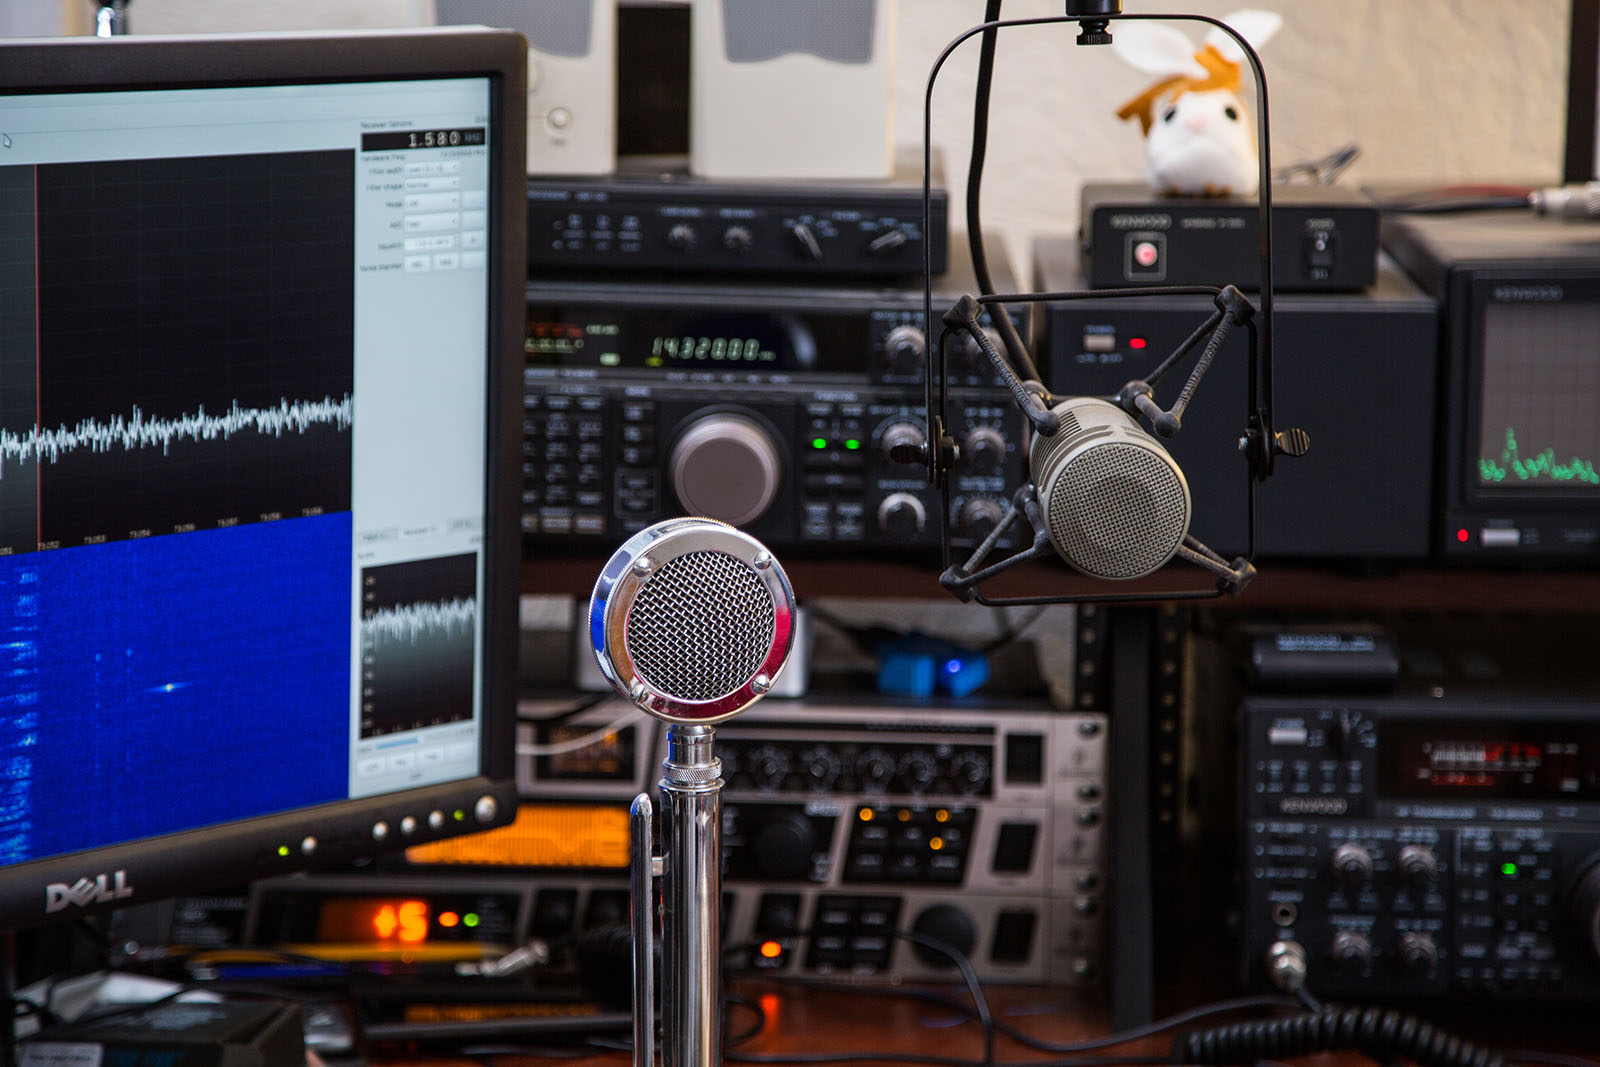 Connect with the Global Community of Amateur Radio